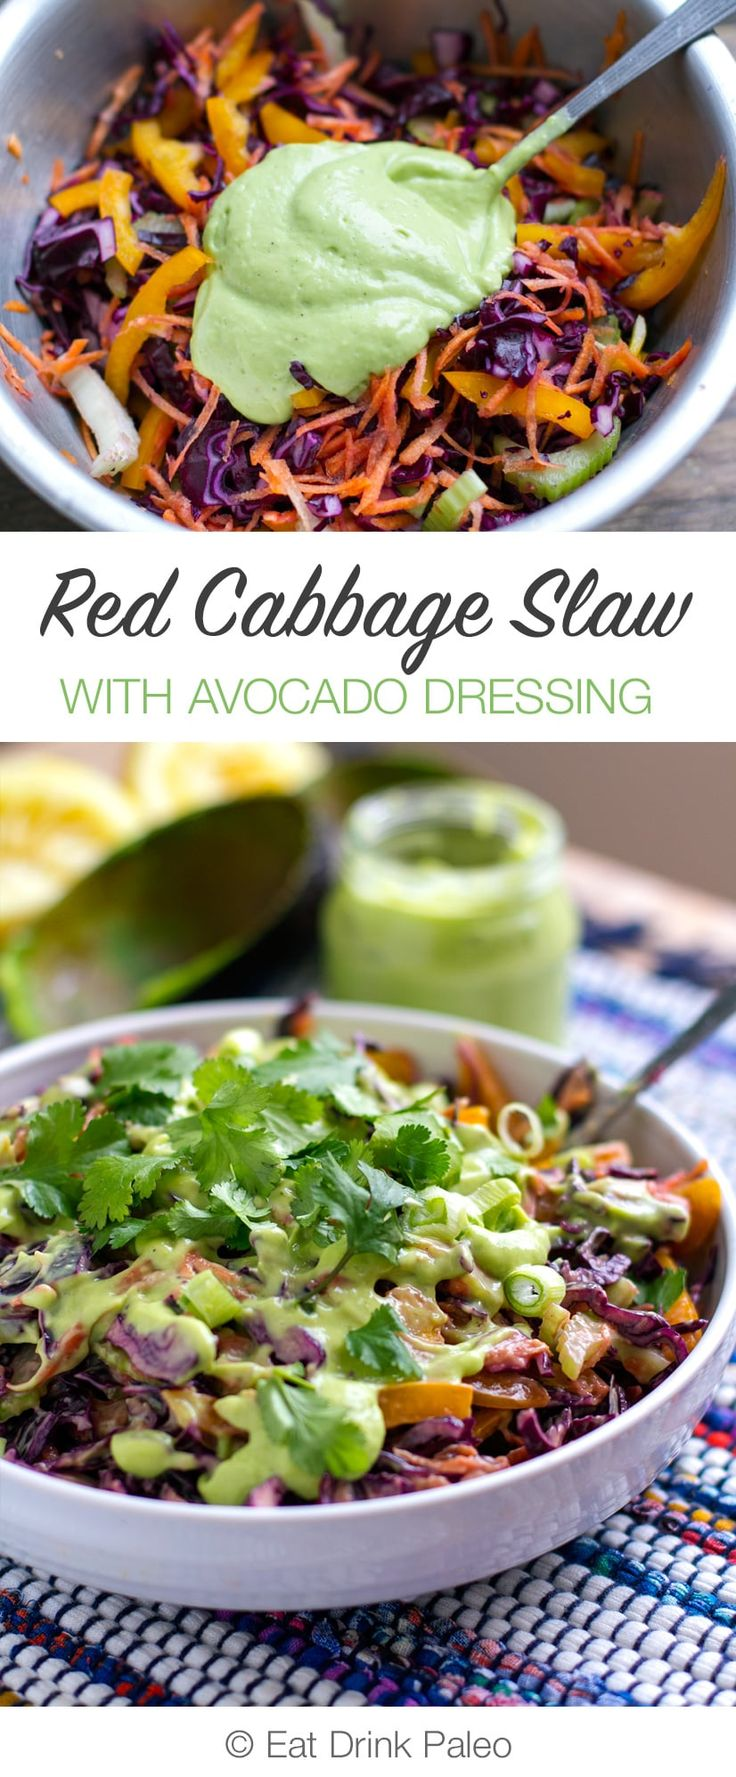 Red Cabbage Slaw With Creamy Avocado and Coriander | http://eatdrinkpaleo.com.au/red-cabbage-slaw-creamy-avocado-coriander/: